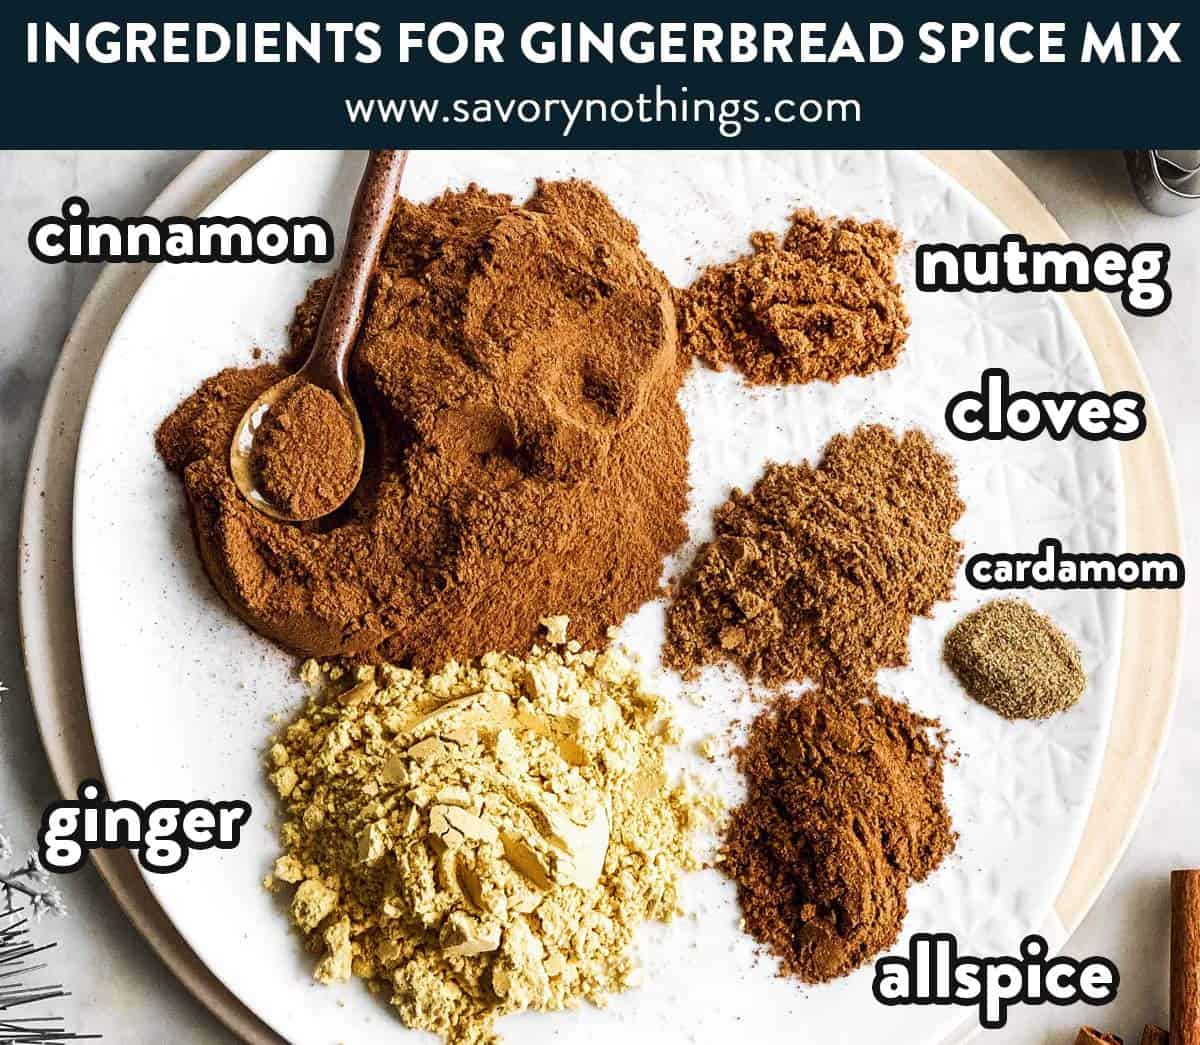 ingredients for gingerbread spice mix with text labels